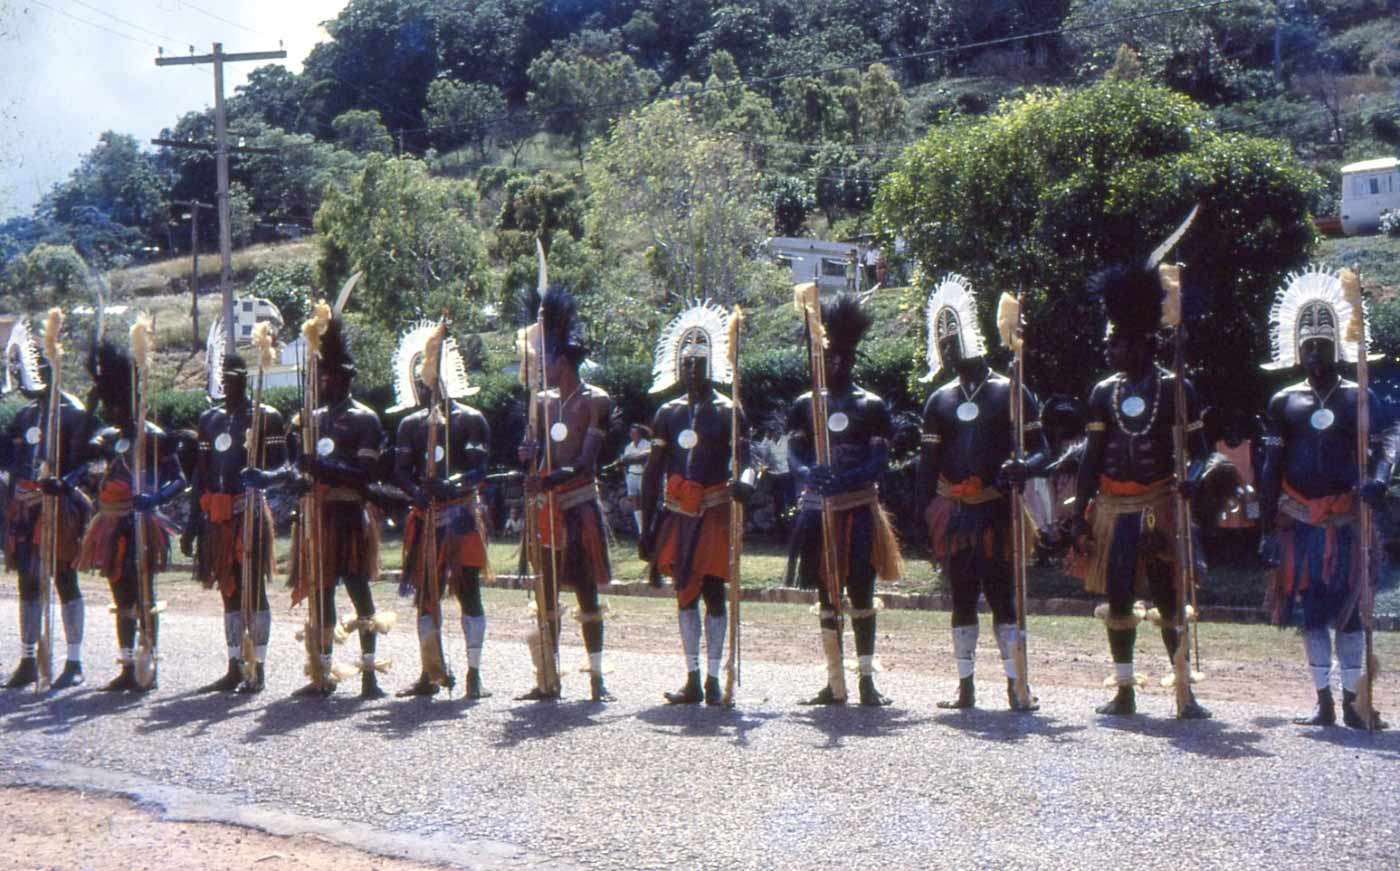 Colour photo of a group of men in traditional costume standing in a straight line on a bitumen road. - click to view larger image